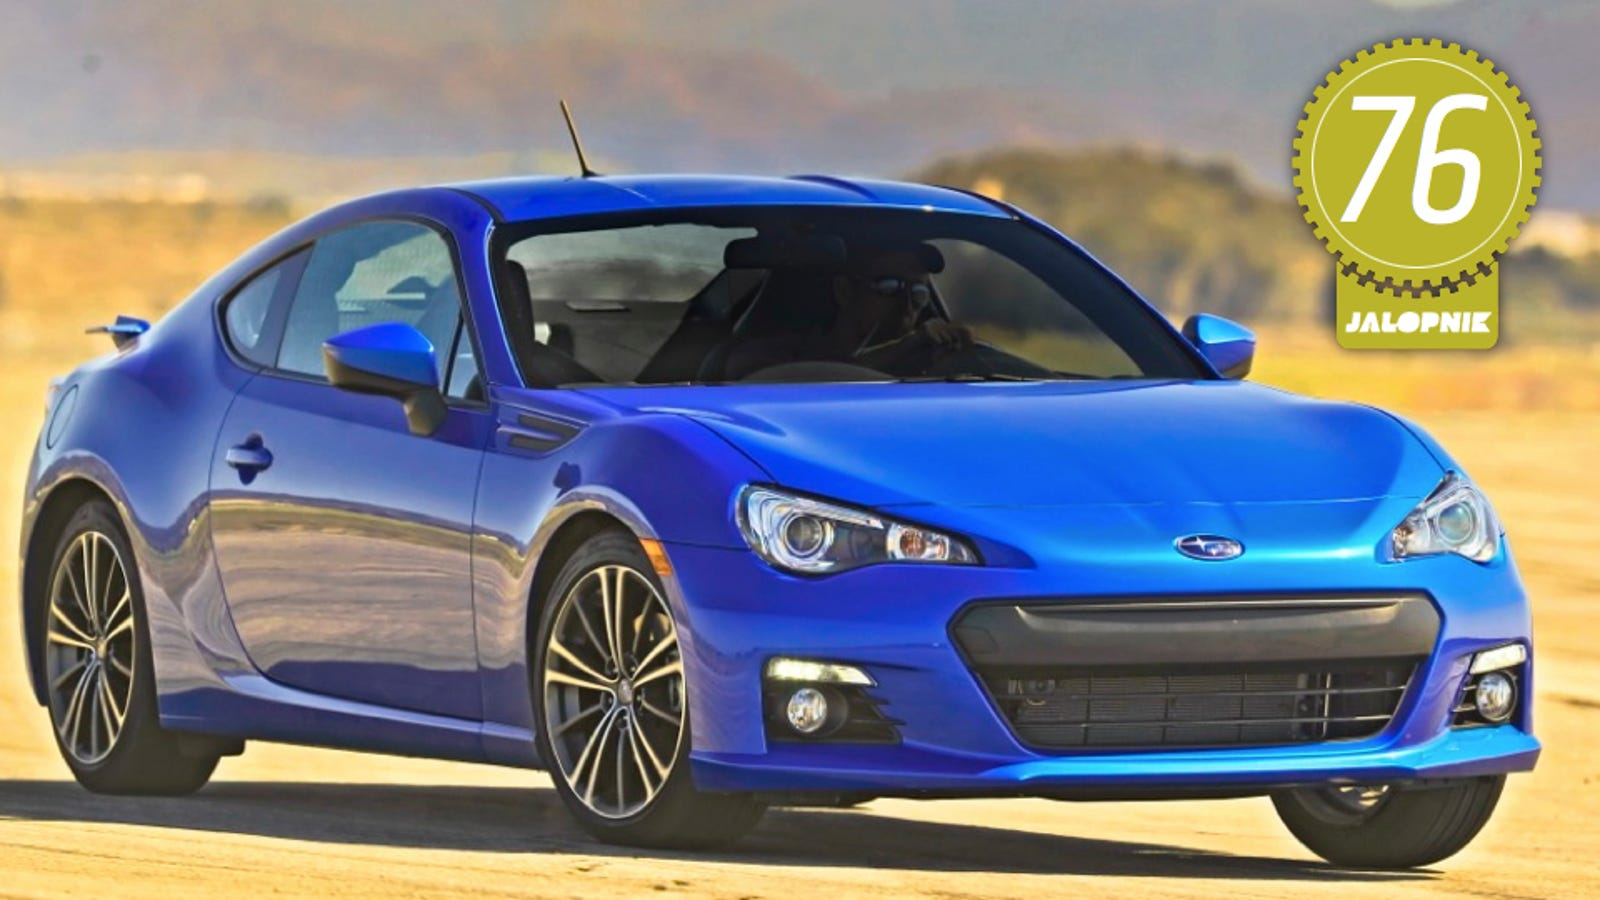 2013 Subaru Brz The Jalopnik Review